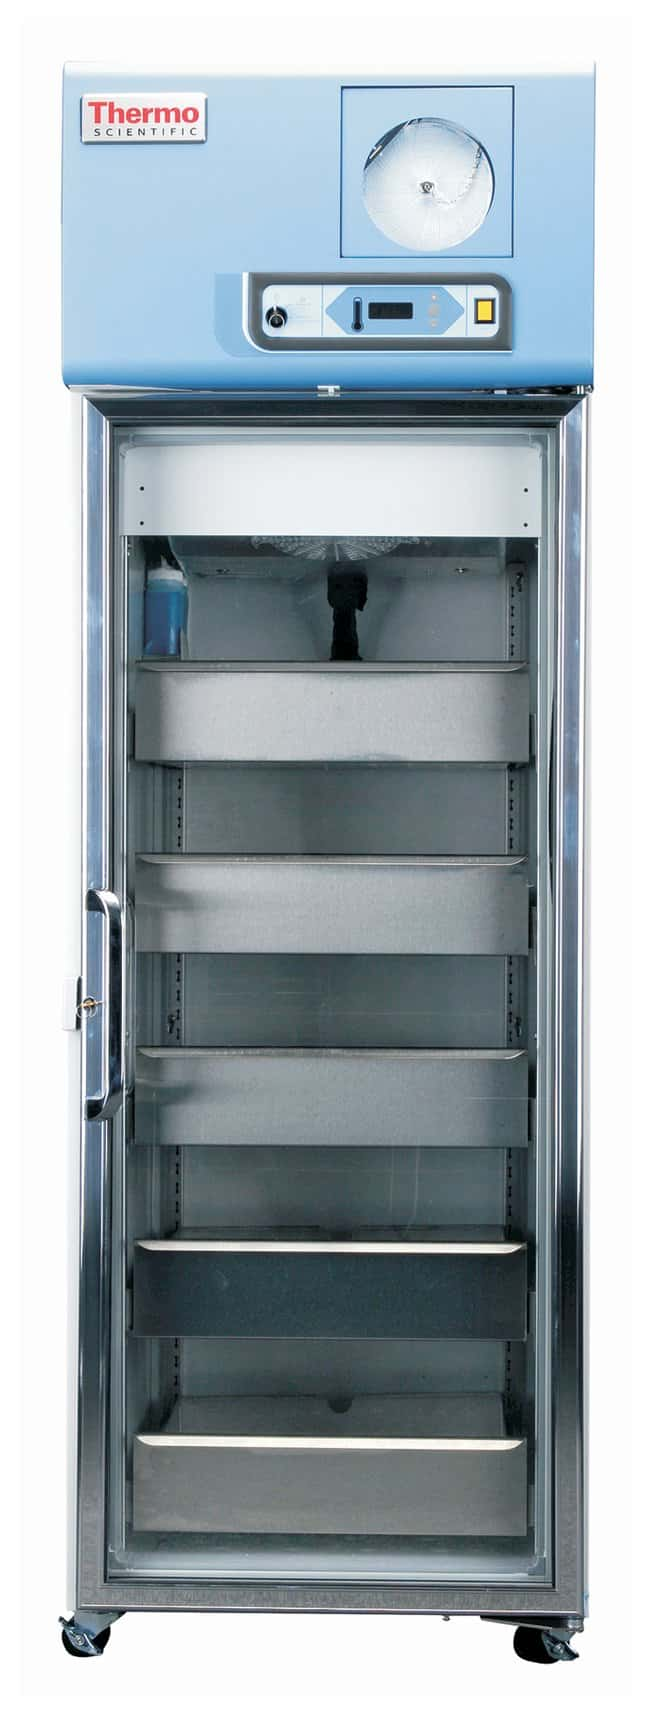 Thermo Scientific Revco Pharmacy Refrigerators 11.5 cu. ft., 115V 60Hz:Cold